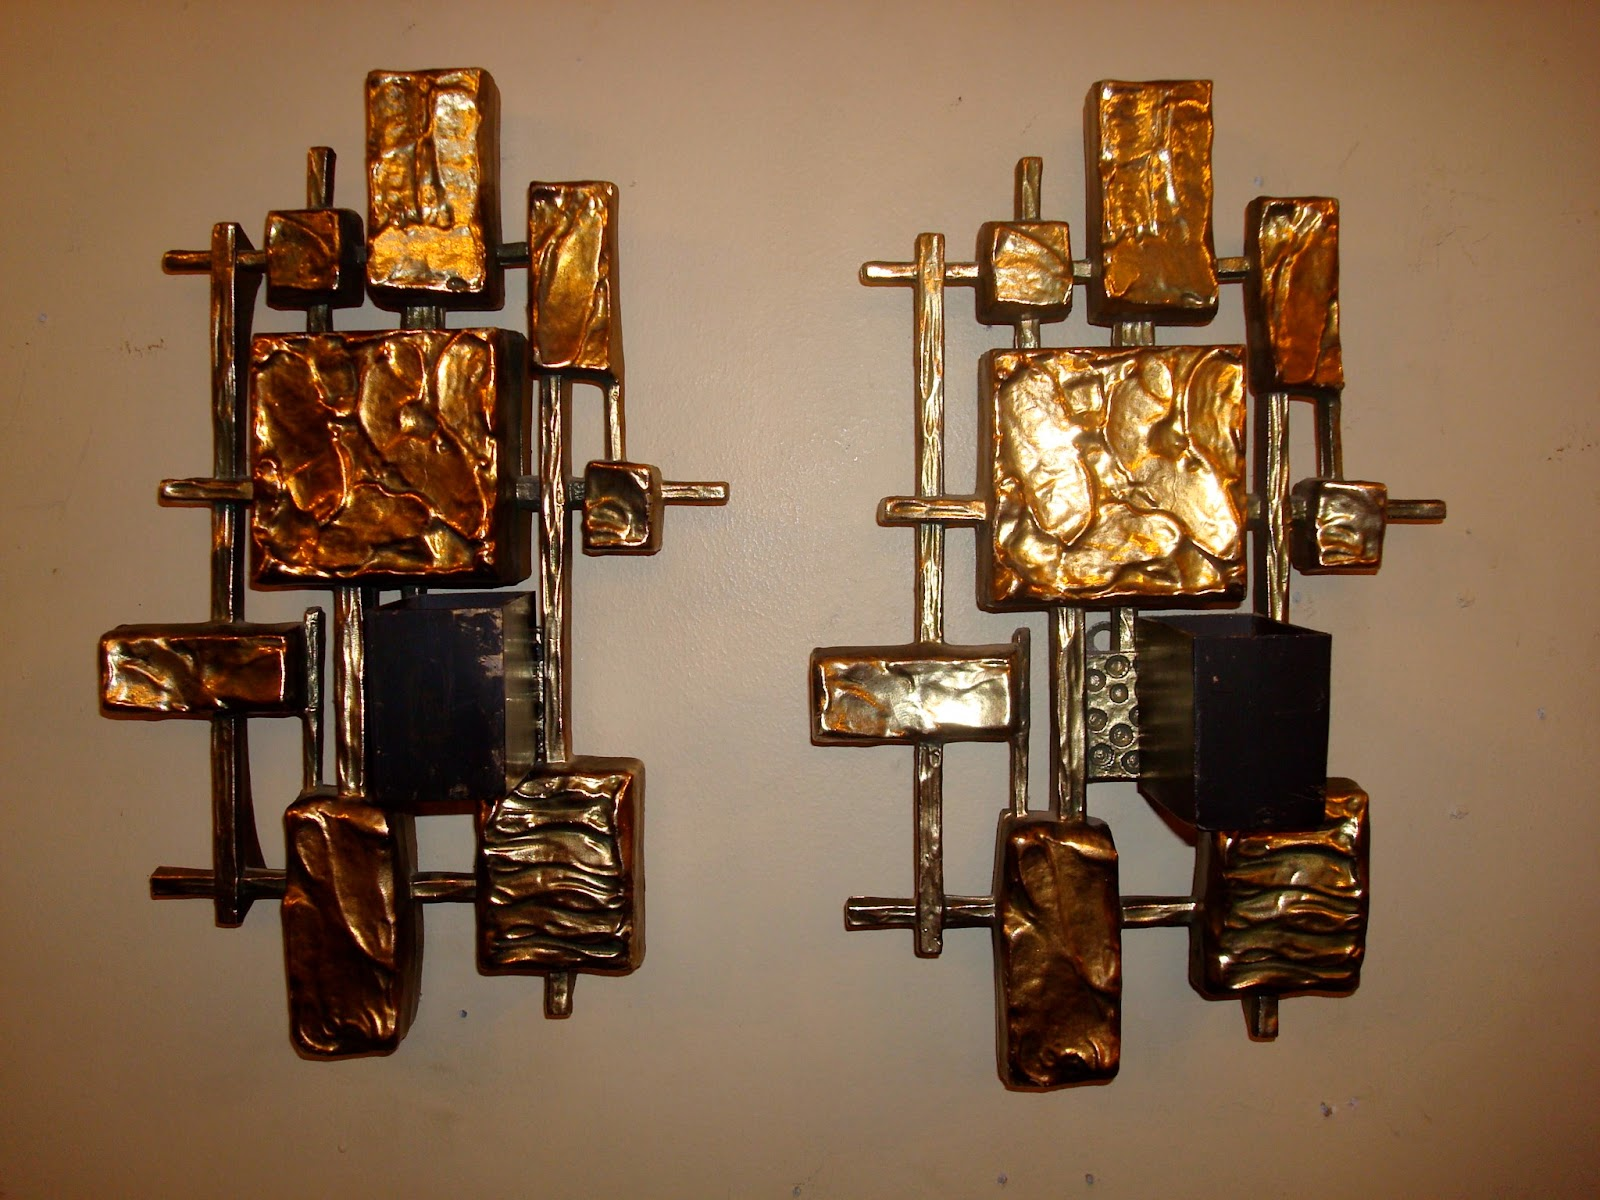 Era Antiques: Pair of Brutalist Wall Sconce Candle Holders ... on Wall Sconces Candle Holders id=63640